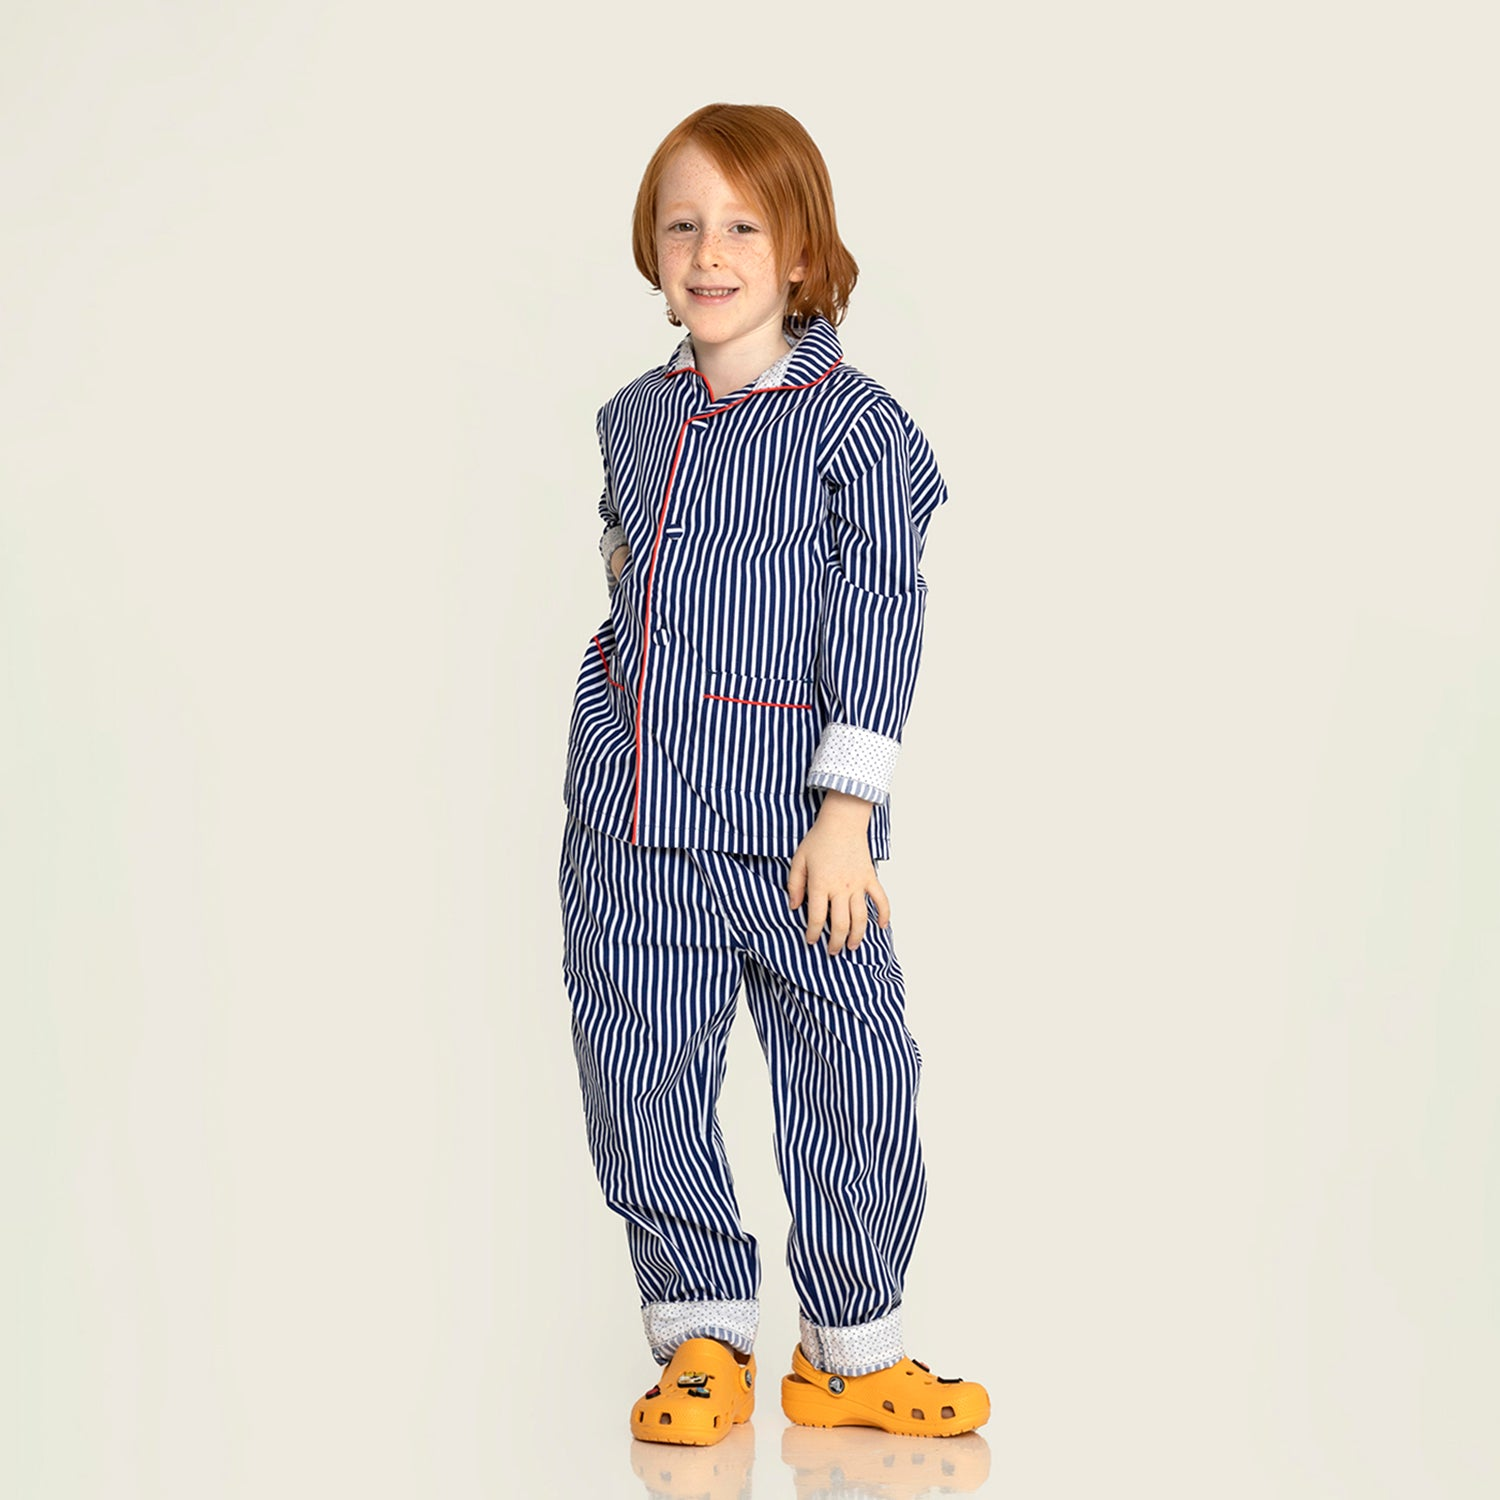 Cherry-Crumble-Kids-Full-Sleeve-Cuffed-Sleeve-Collared-Striped-Shirt-&-Pyjama-Nightsuit